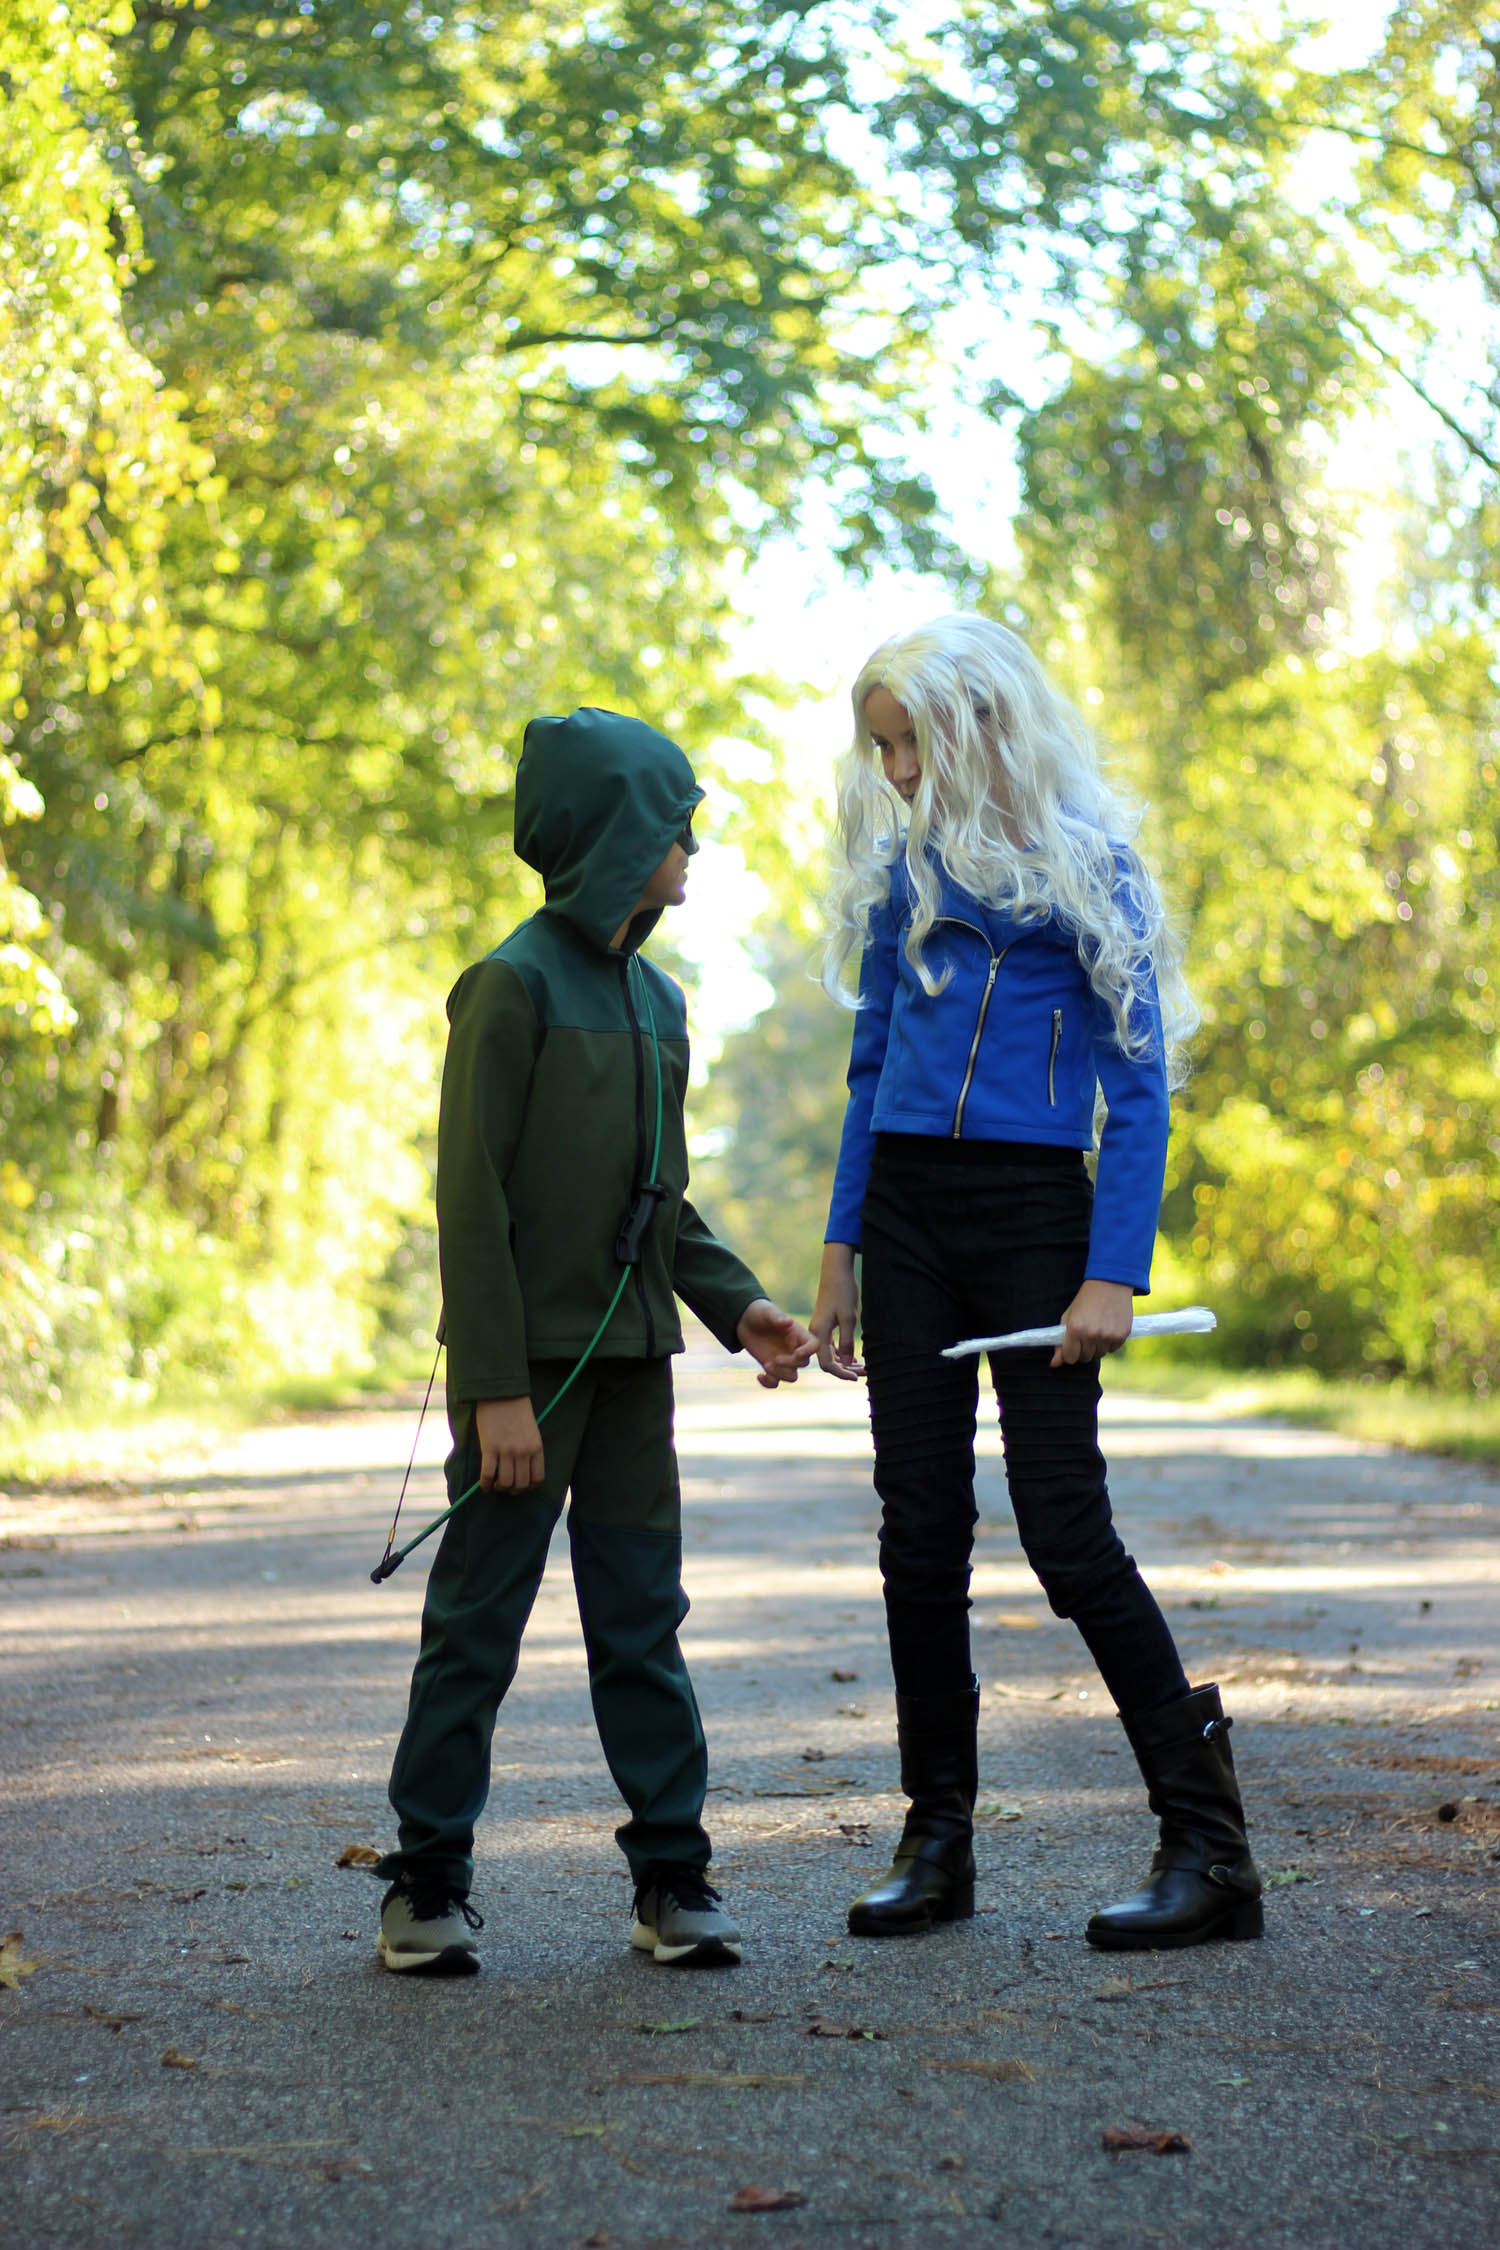 JB_Killer Frost _ Green Arrow_9382.jpg